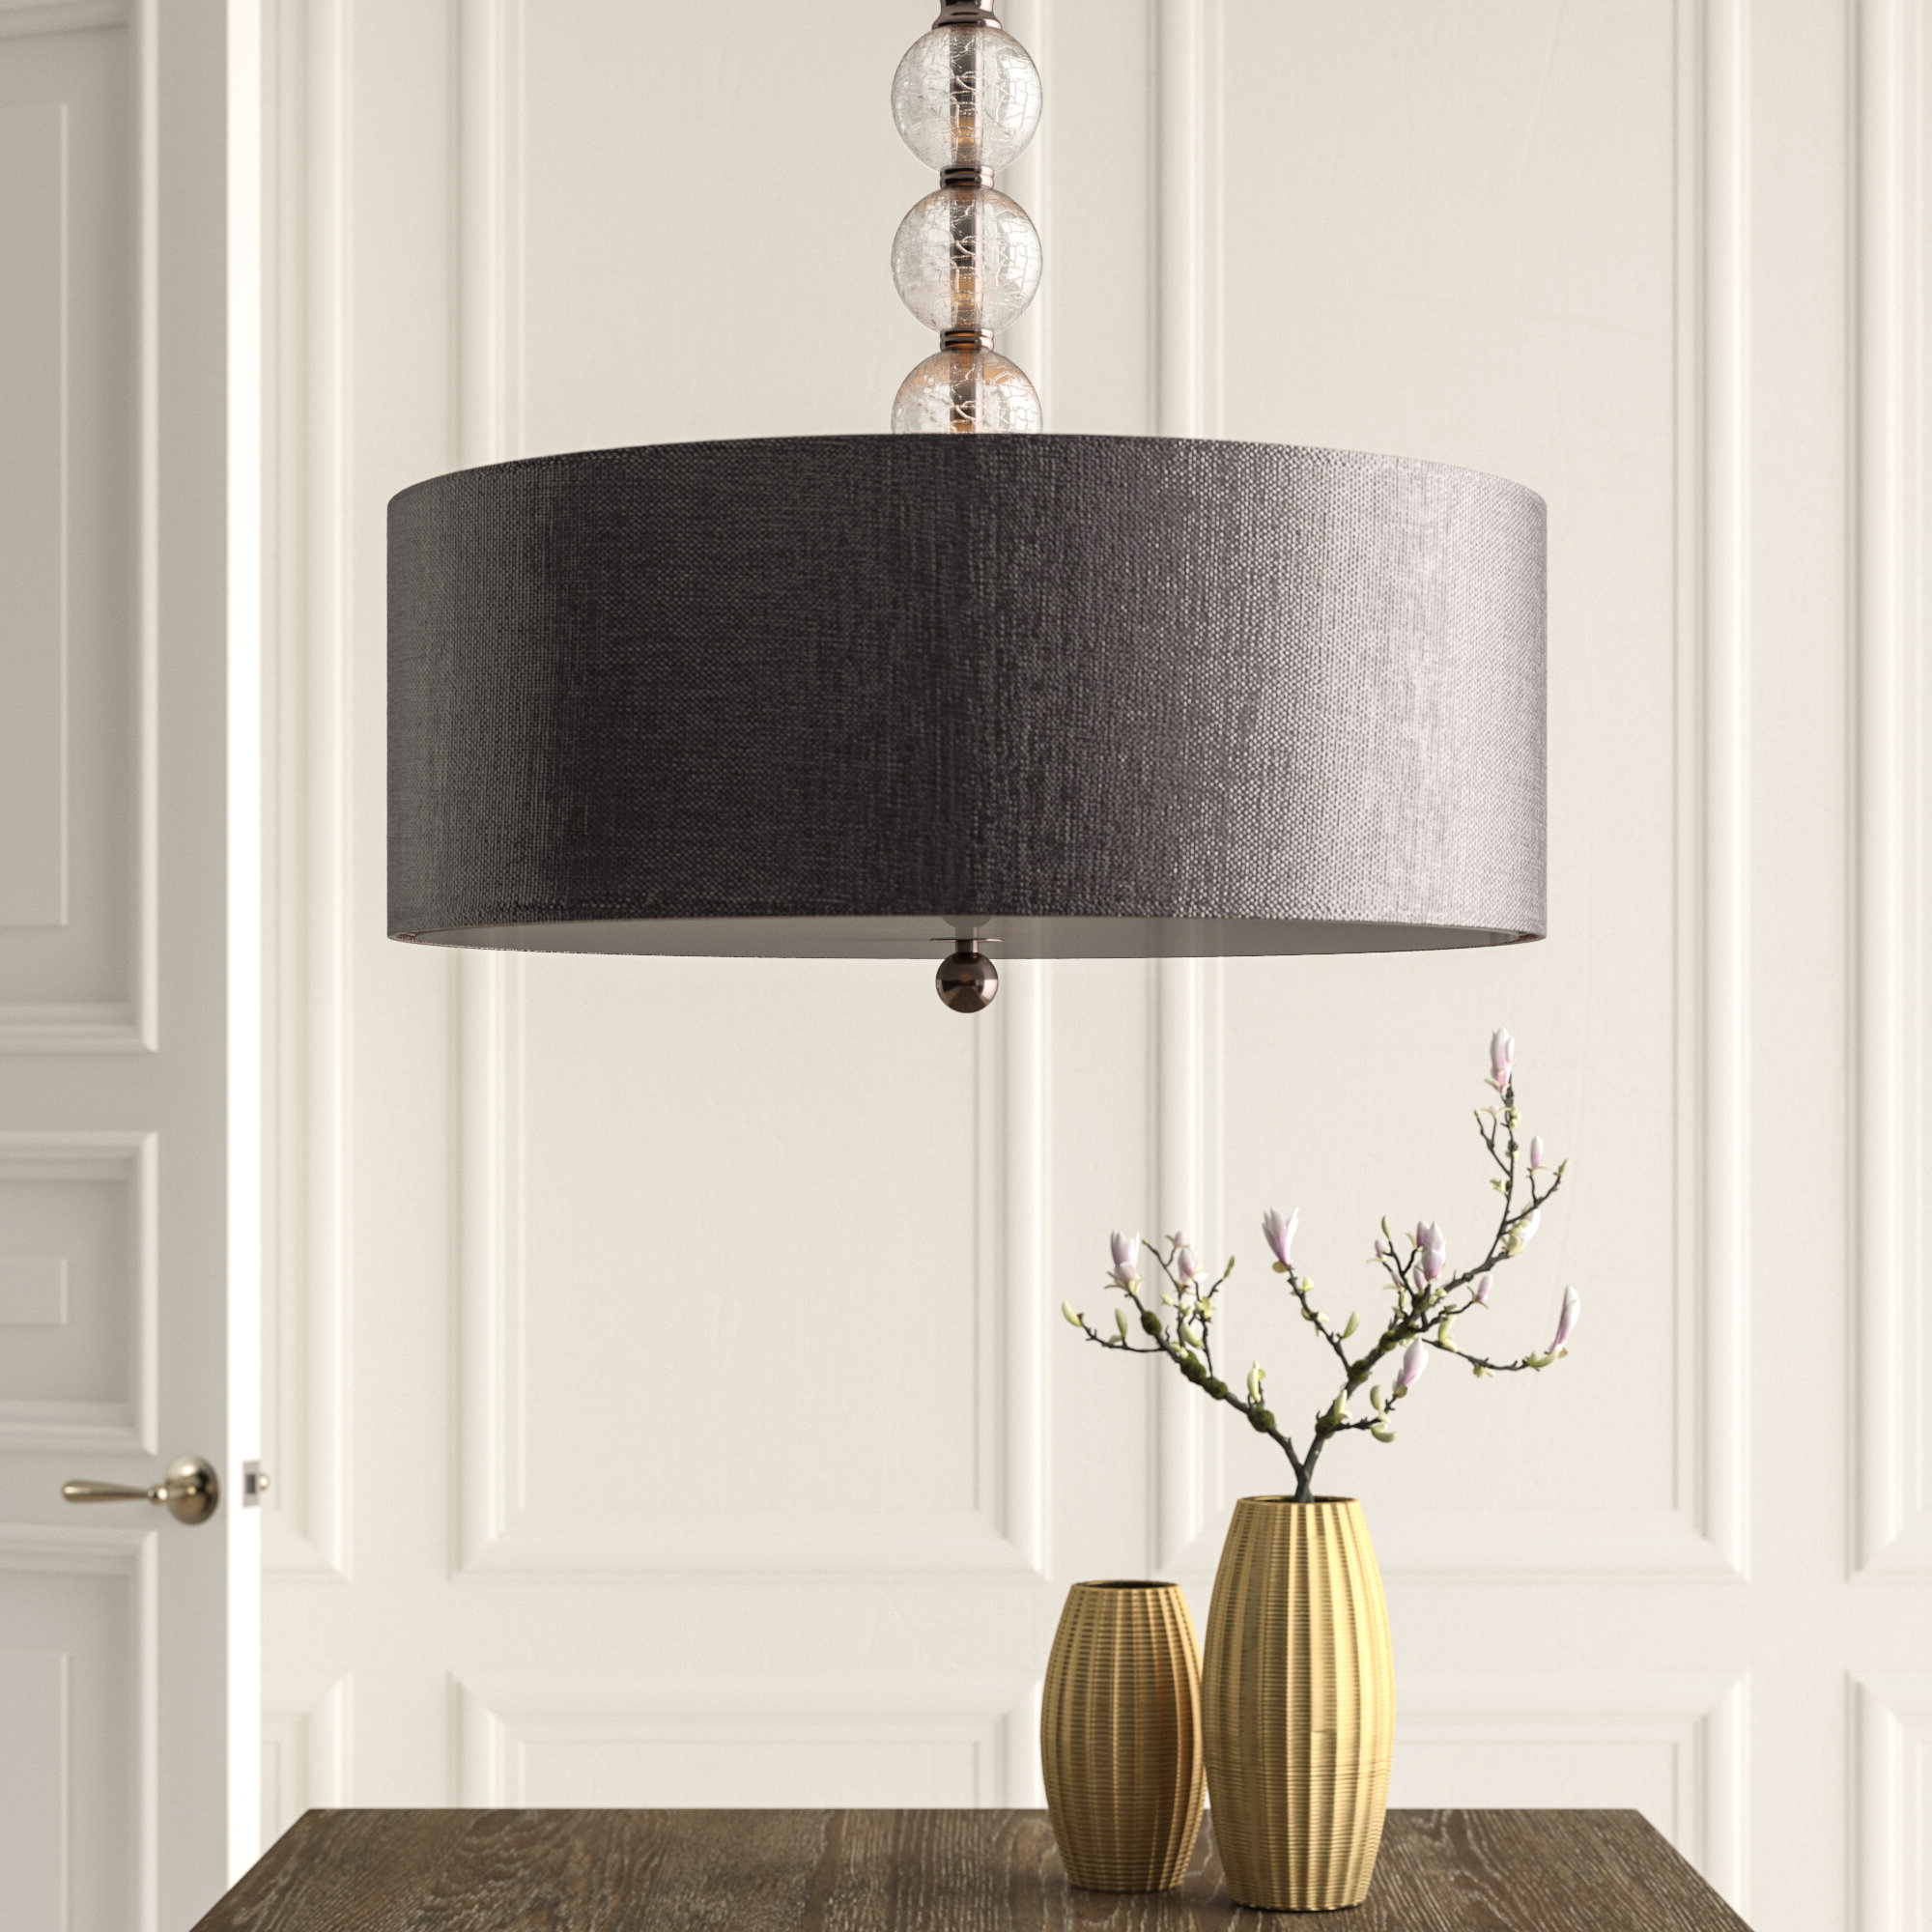 Burslem 3 Light Single Drum Pendants Throughout Fashionable Gaetan 3 Light Single Drum Pendant (View 4 of 20)